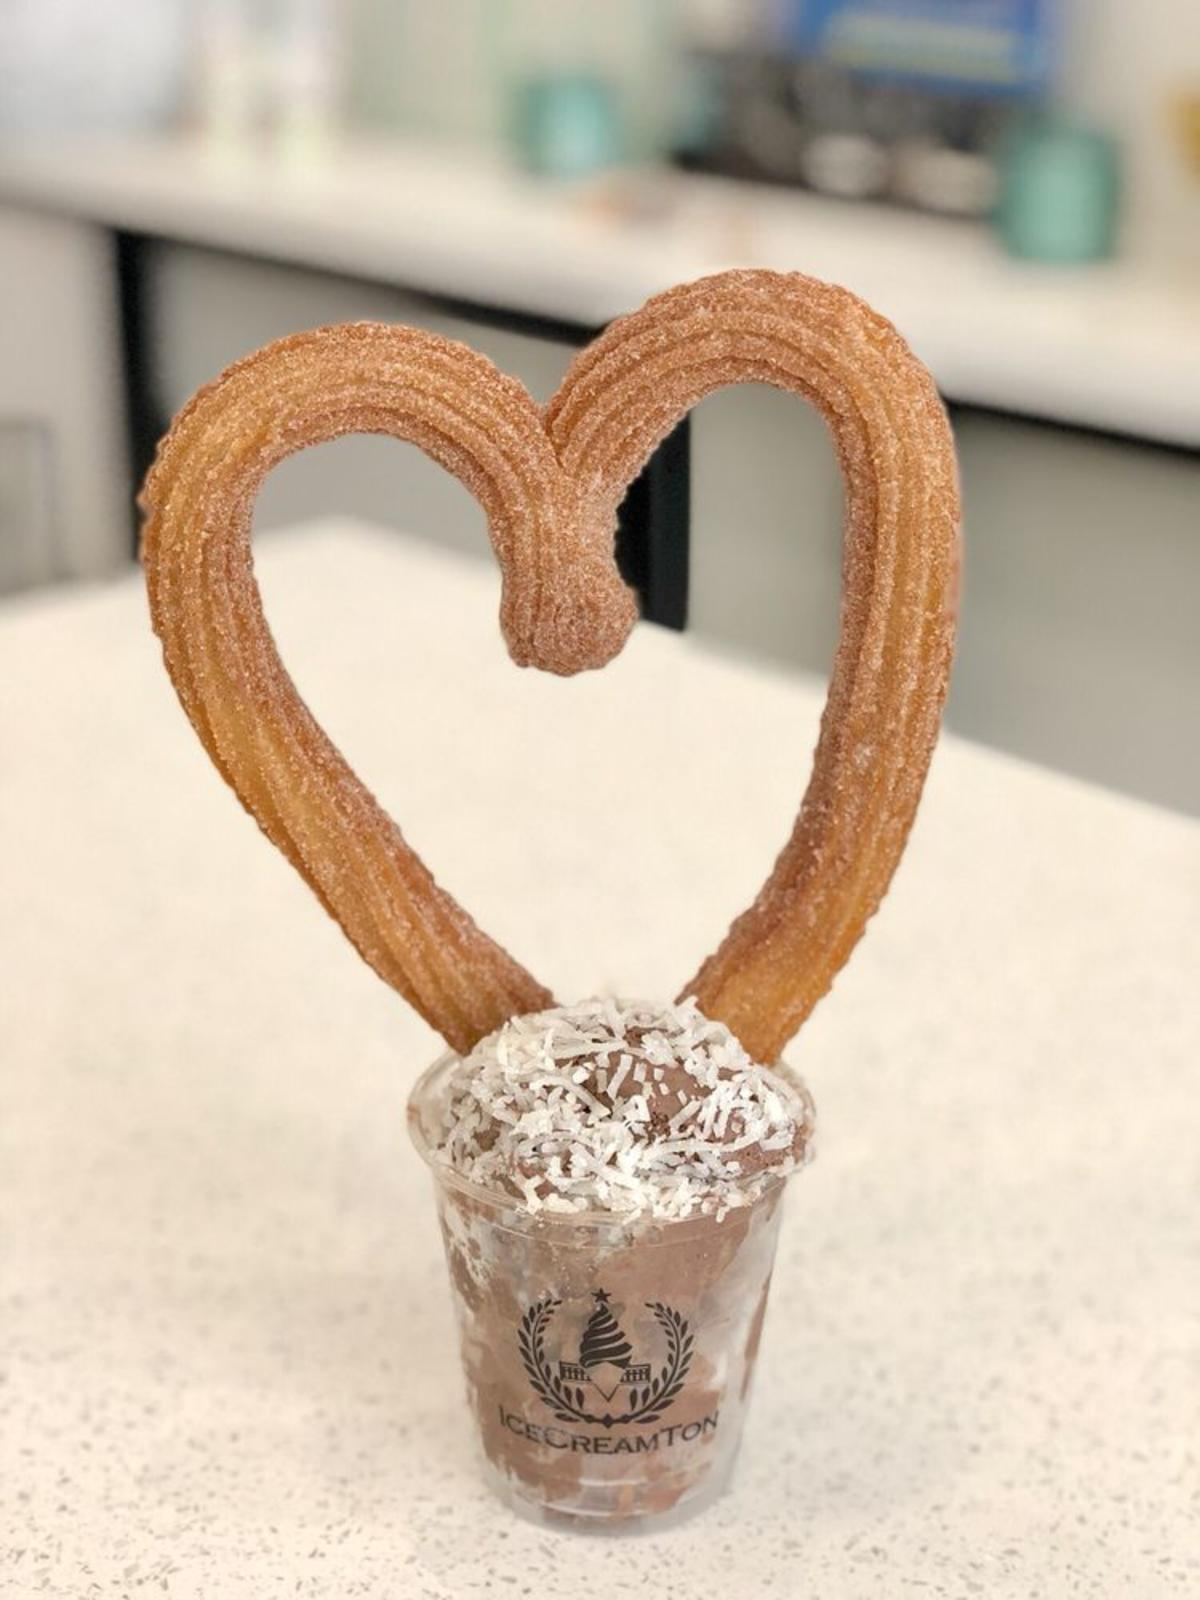 Ice cream cup with heart shaped churro at IceCreamTon in Huntington Beach